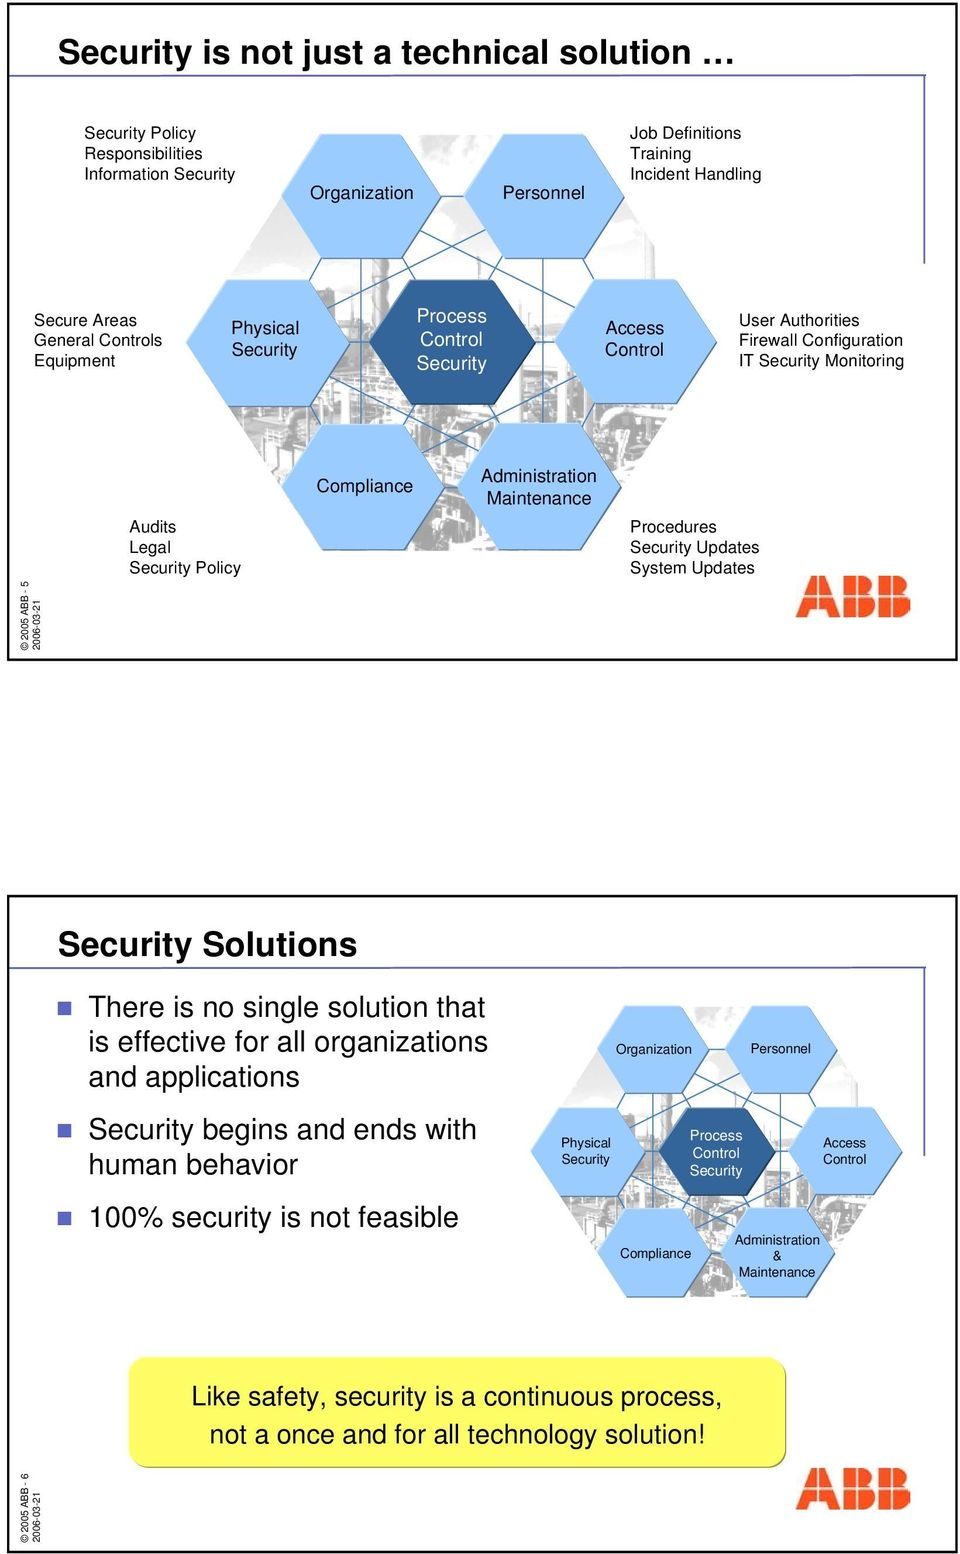 Procedures Security Updates System Updates 2005 ABB - 6 2005 ABB - 5 Security Solutions There is no single solution that is effective for all organizations and applications Security begins and ends